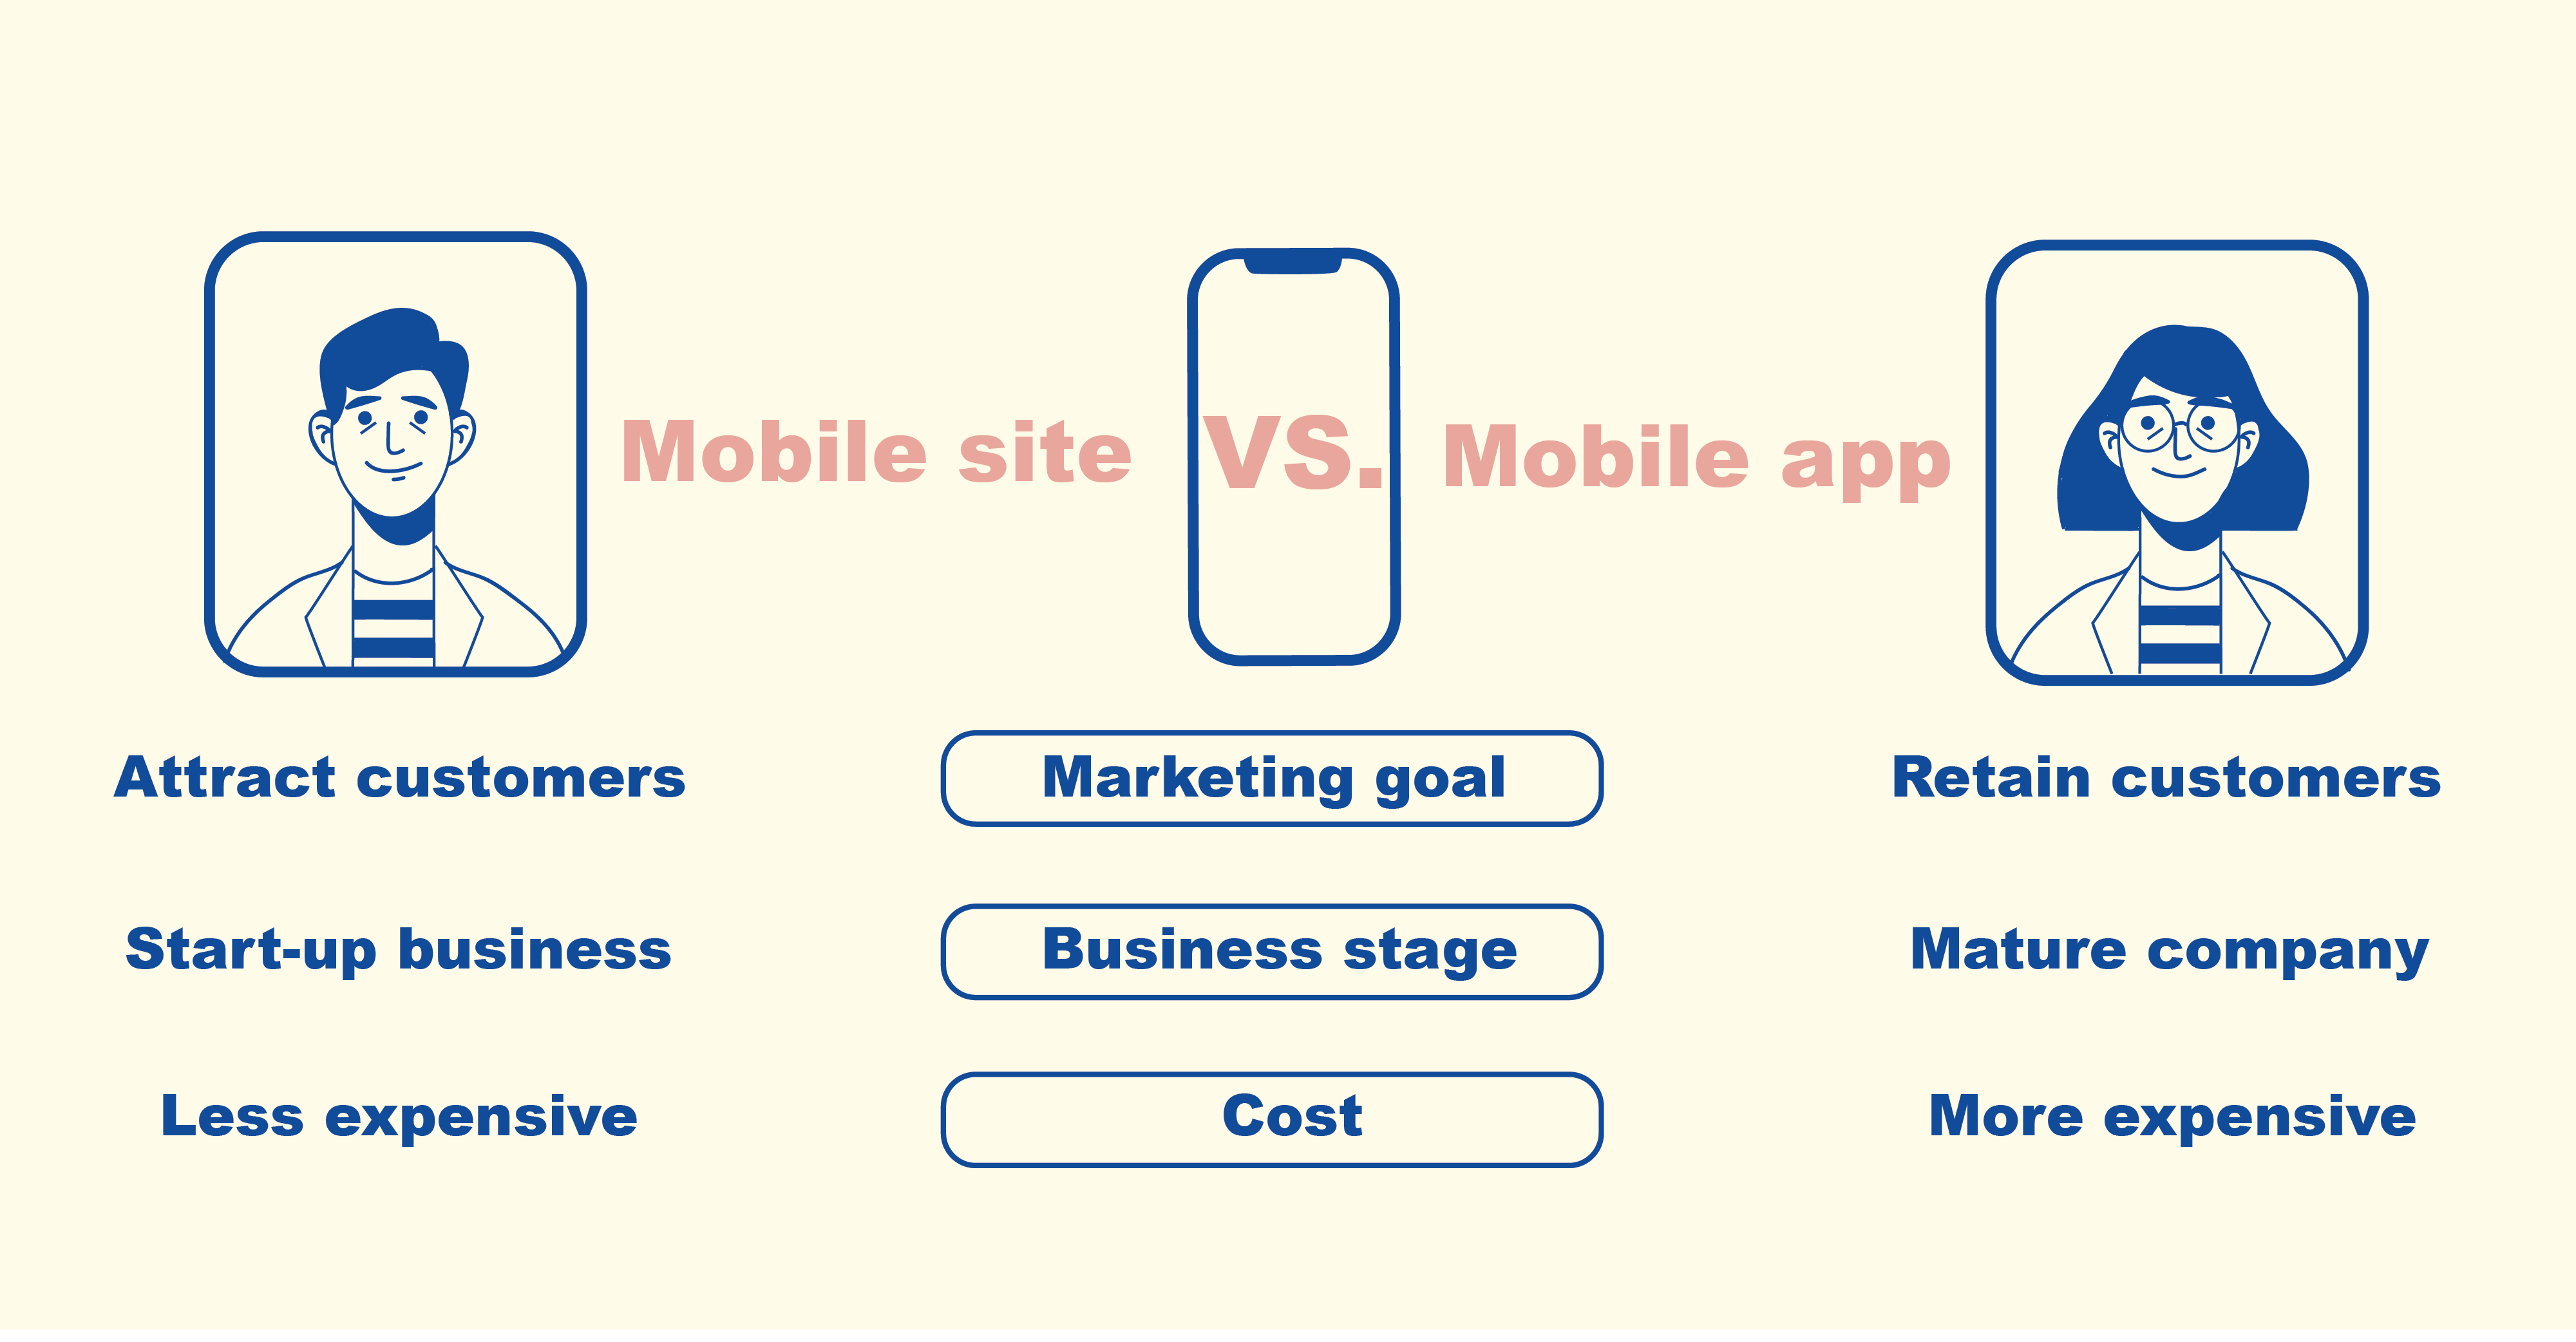 Deciding on mobile site vs. mobile app